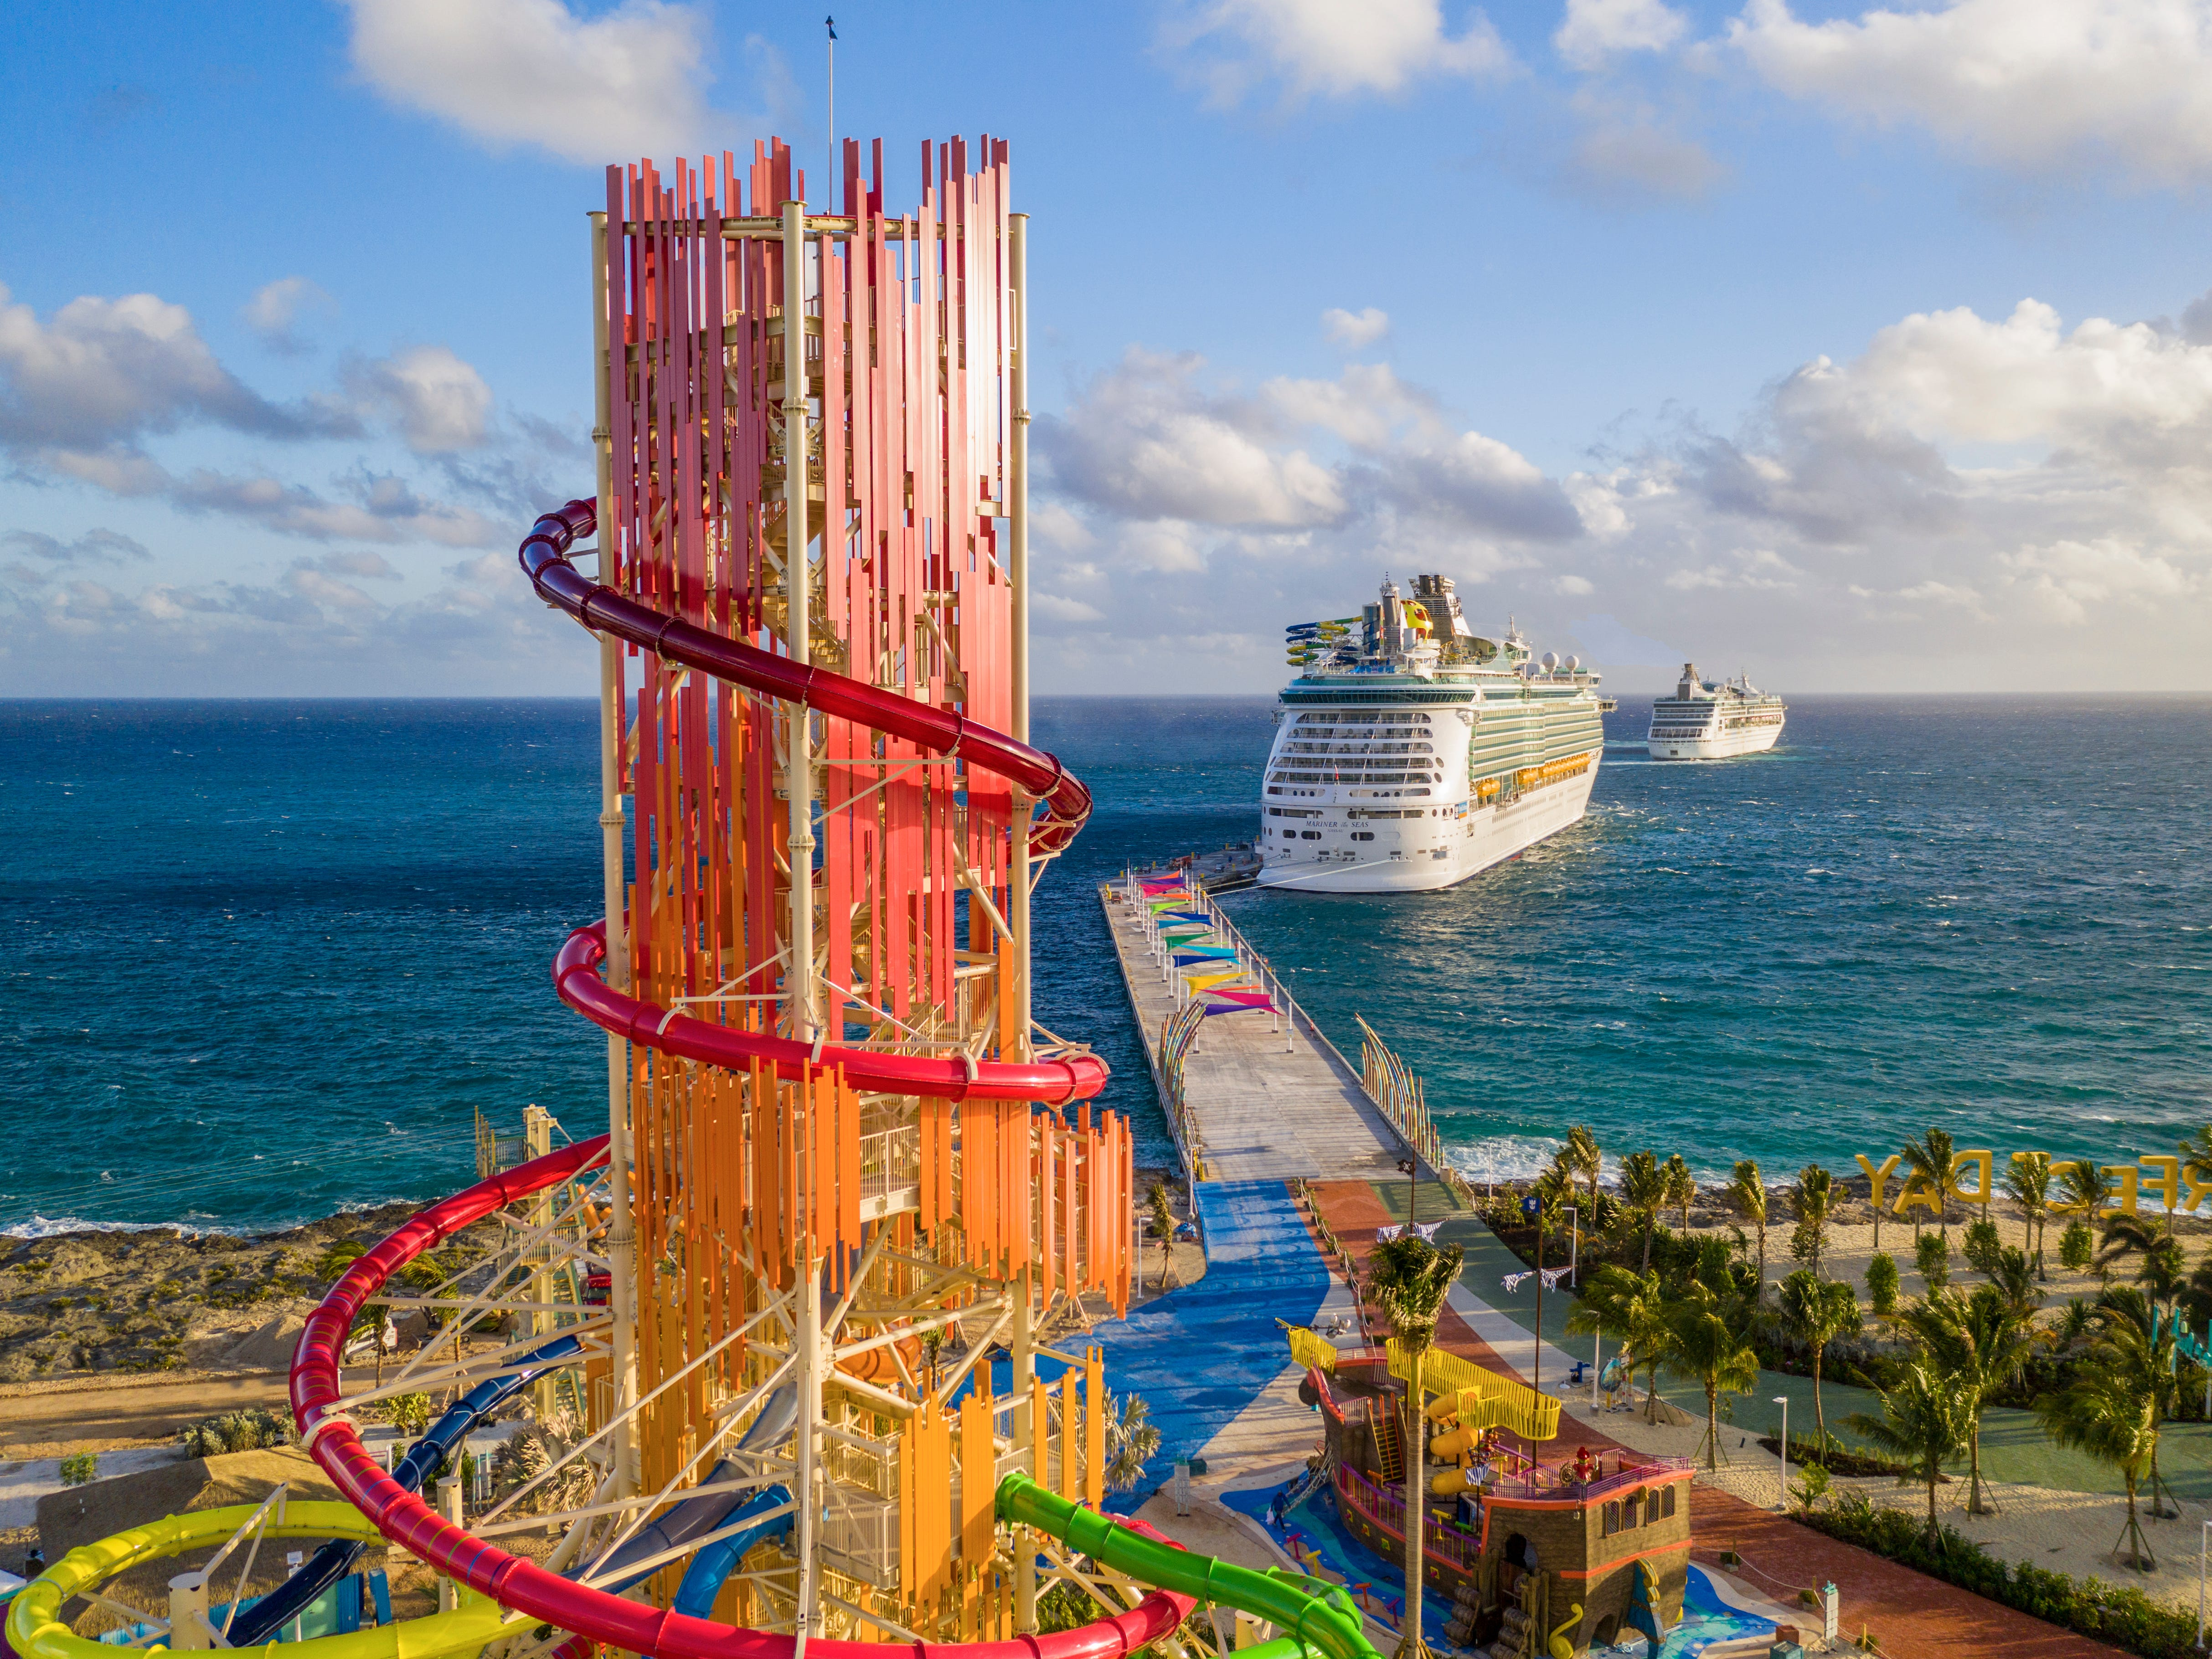 Royal Caribbean's CocoCay private island gets $250 million makeover